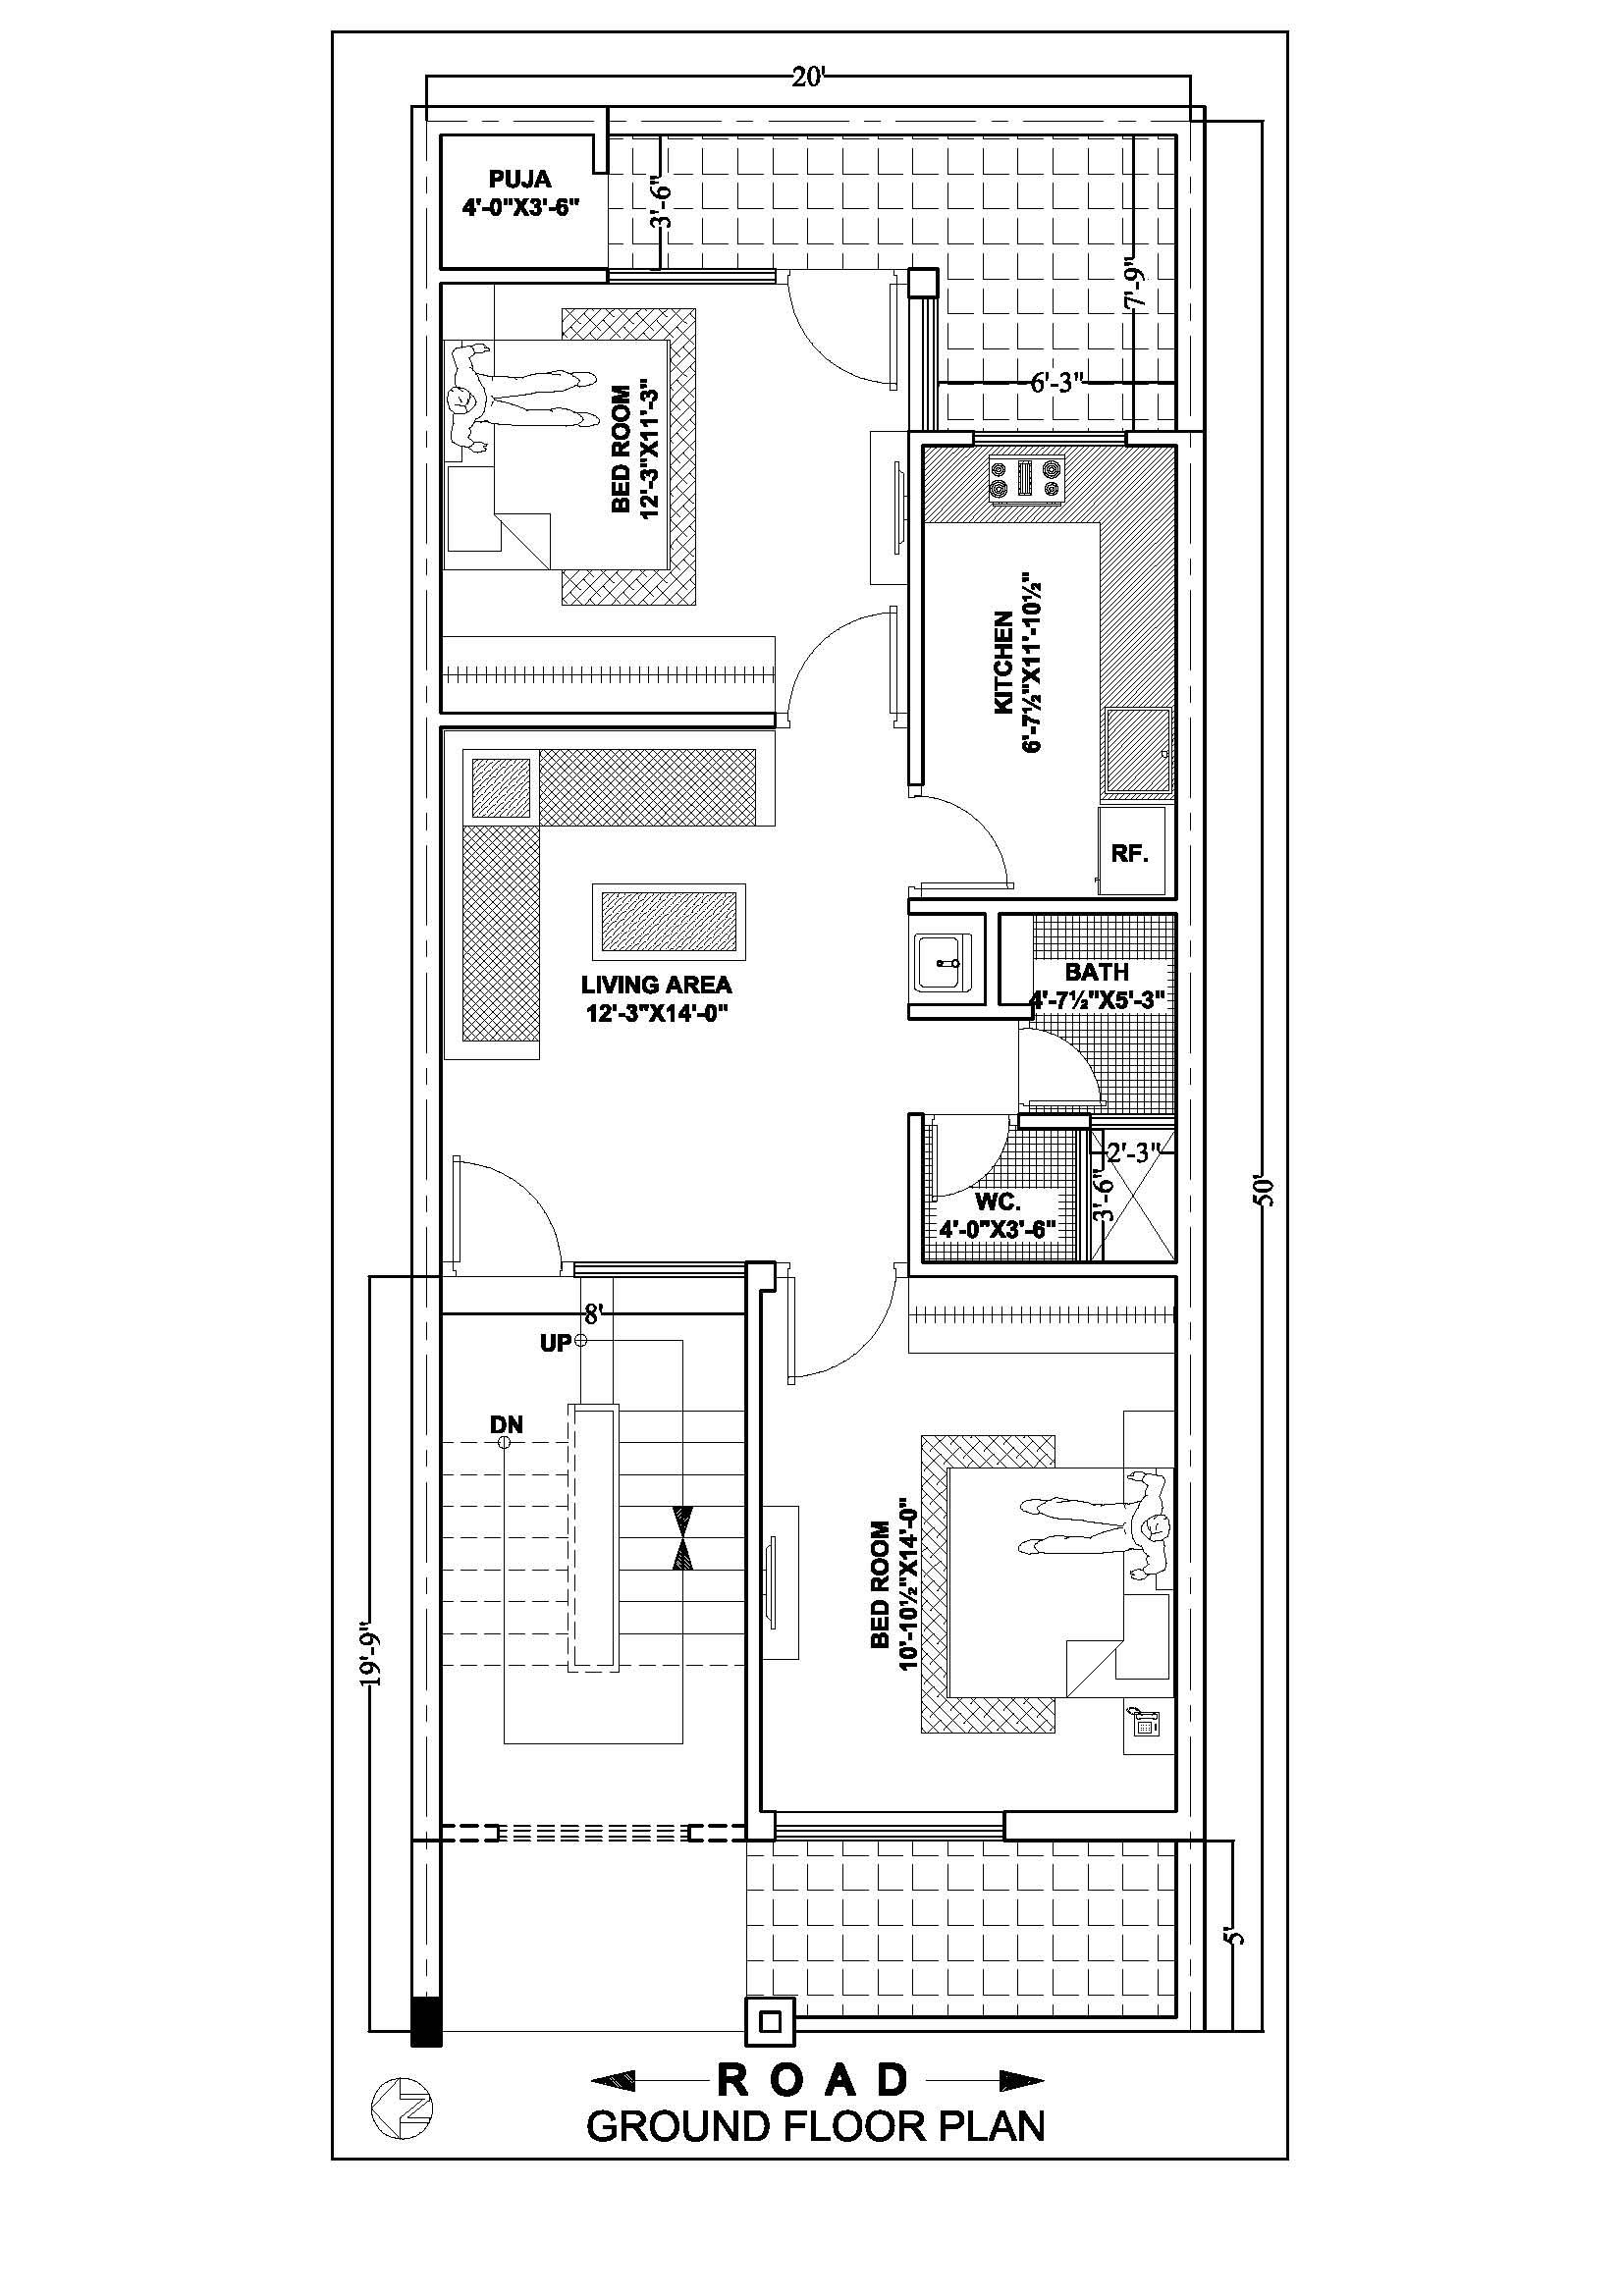 ground floor north side drawing  house plans also best images in rh pinterest